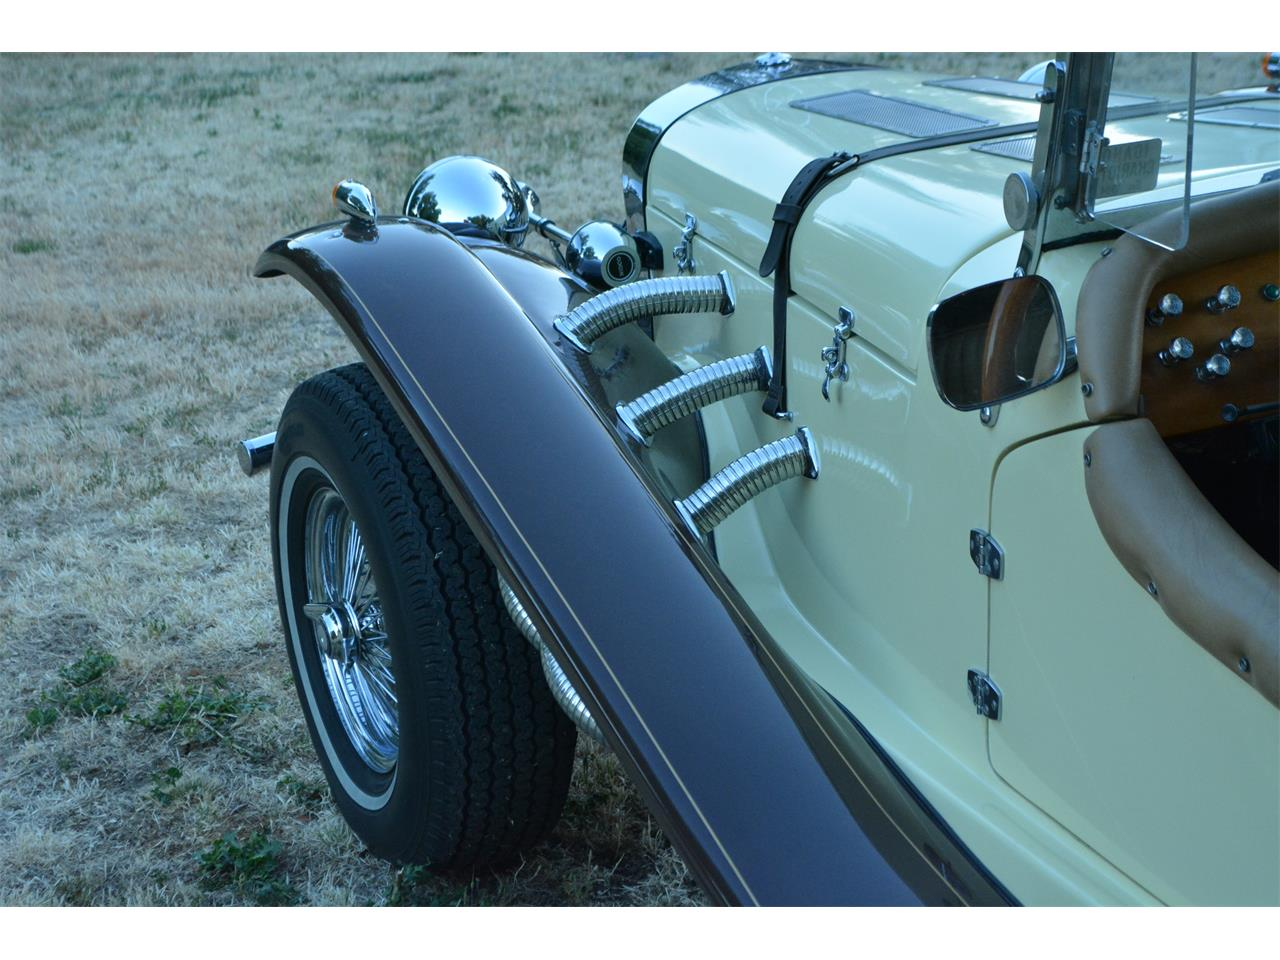 Large Picture of '29 SSK Replica located in Tracy California - $10,000.00 Offered by Robz Ragz - LAJ0